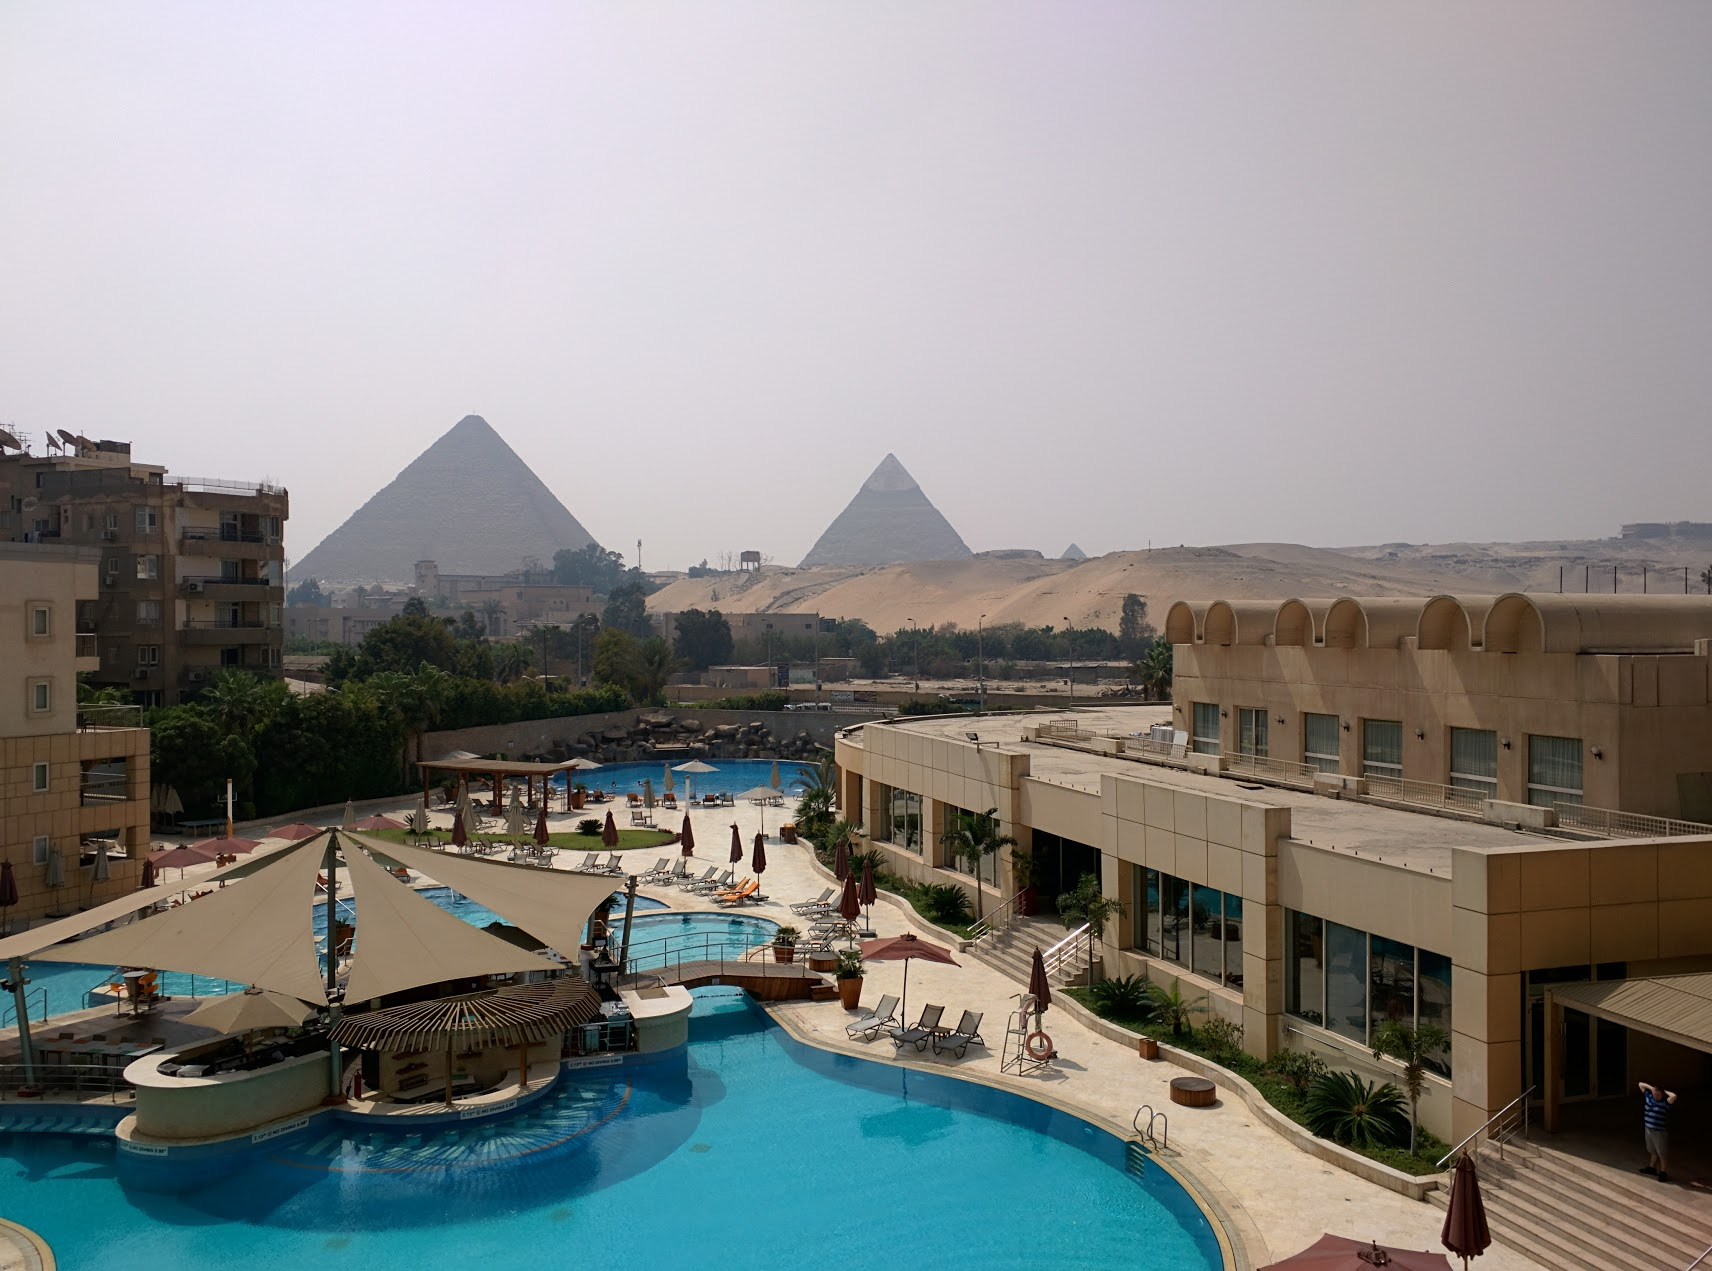 Tales from the road: the worst airport queuing in the world, and Don eats a Cairo pigeon